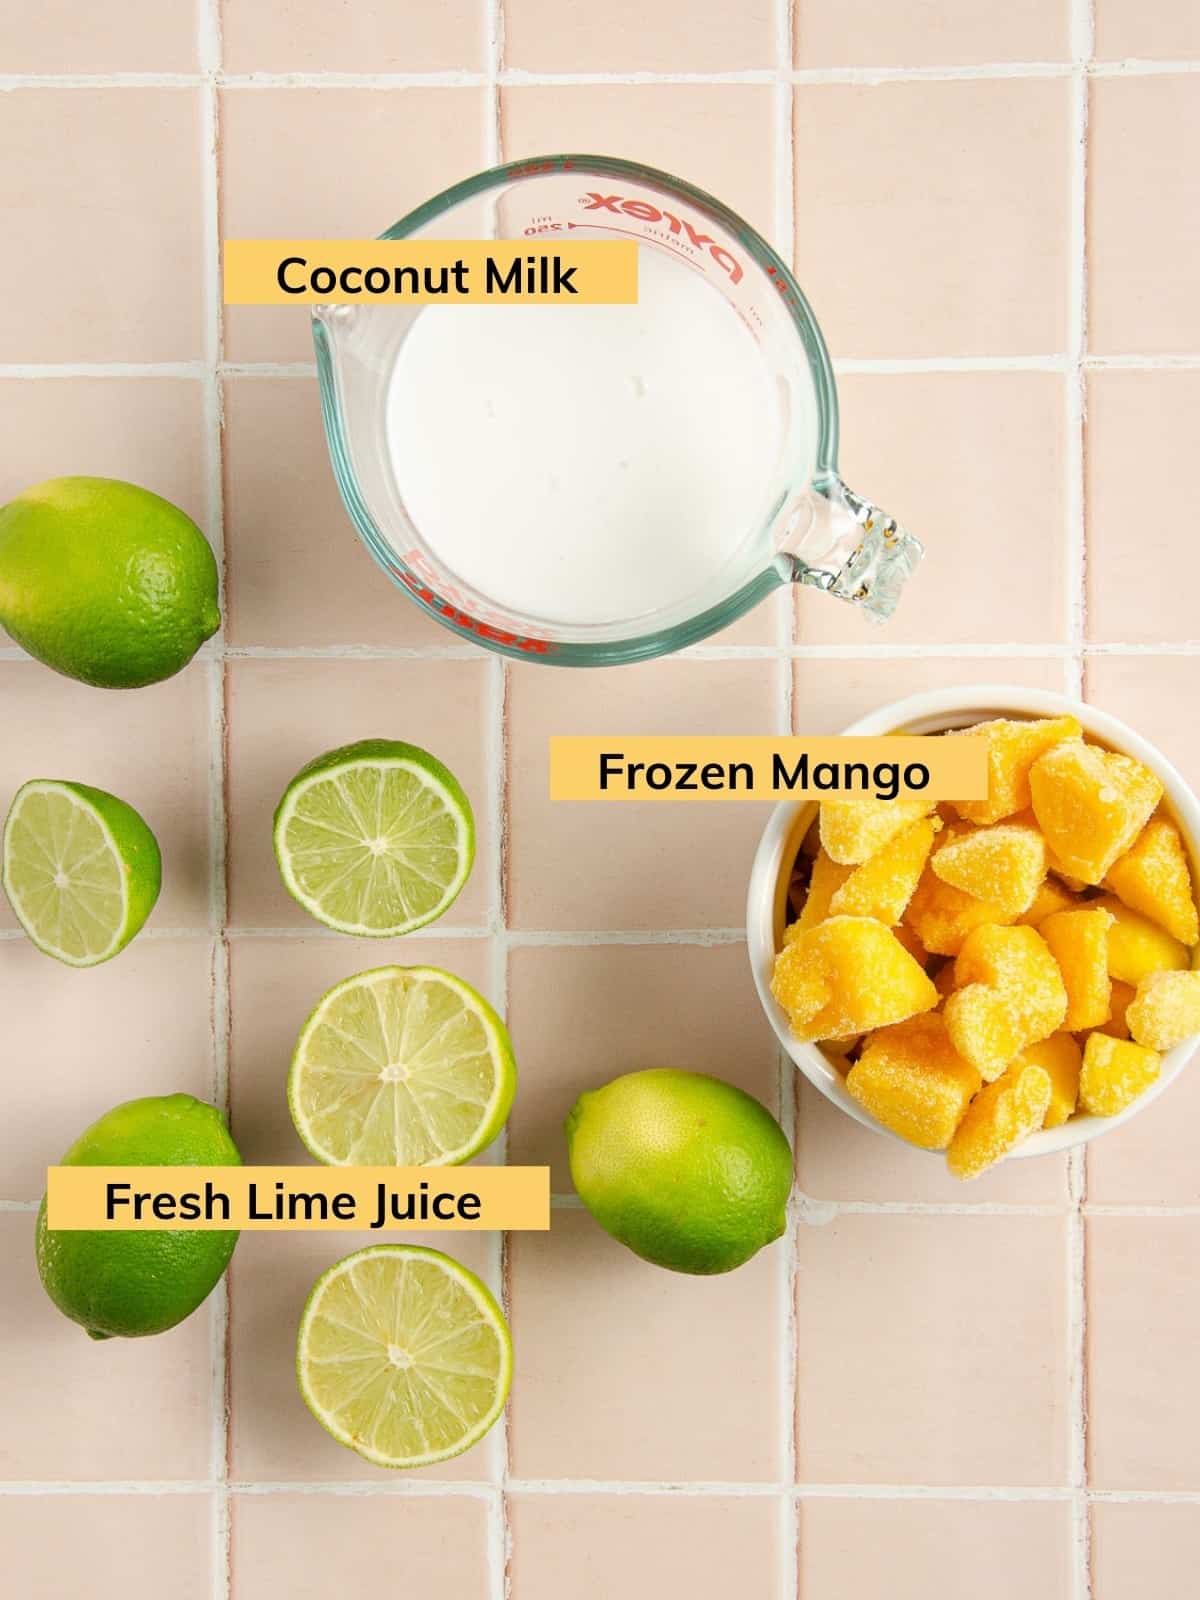 a measuring cup of coconut milk, a bowl of frozen mango chunks and halved limes on a countertop